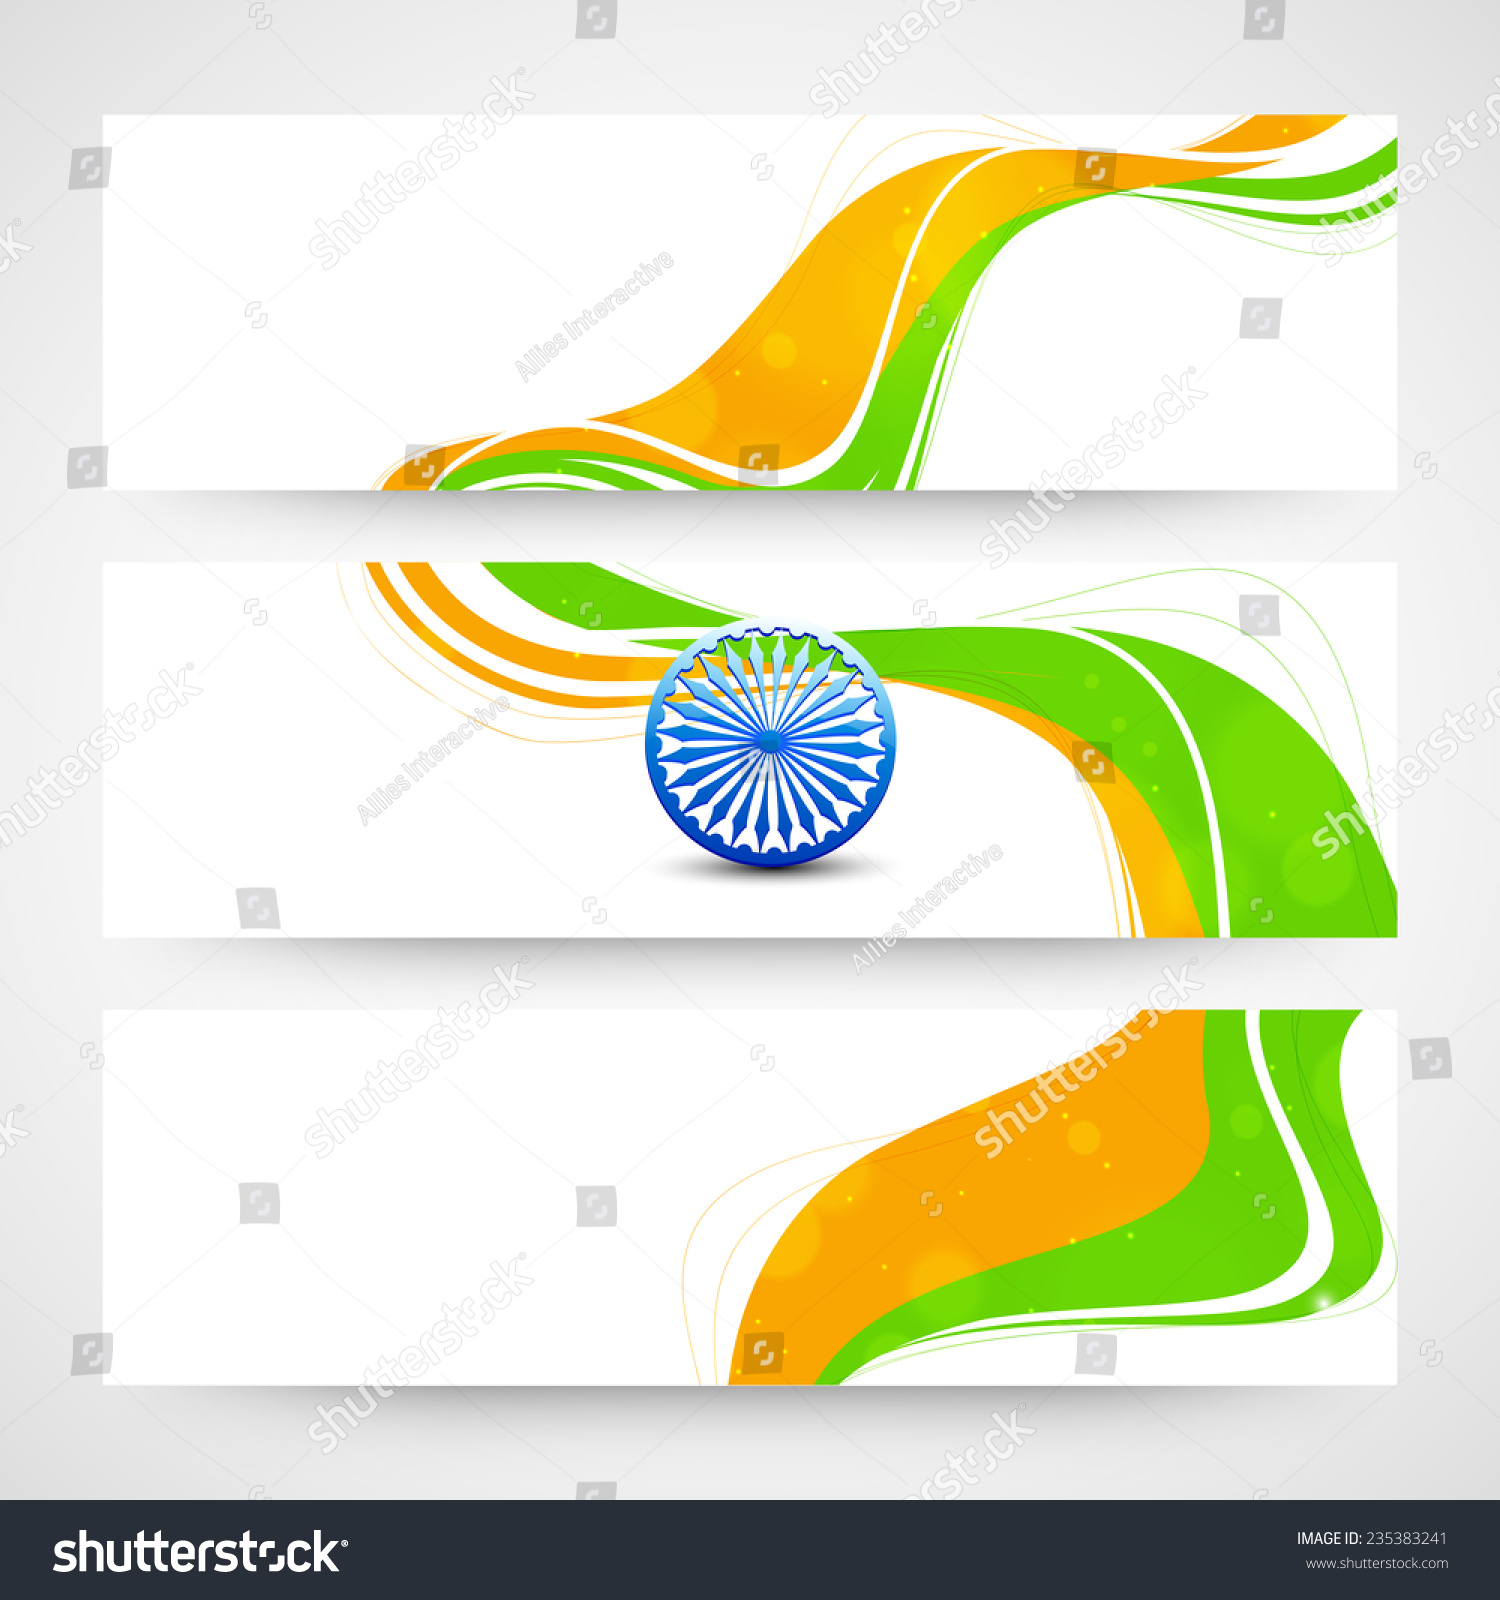 Colors website ashoka - Website Header Or Banner Set With Ashoka Wheel And National Flag Colors For Indian Republic Day